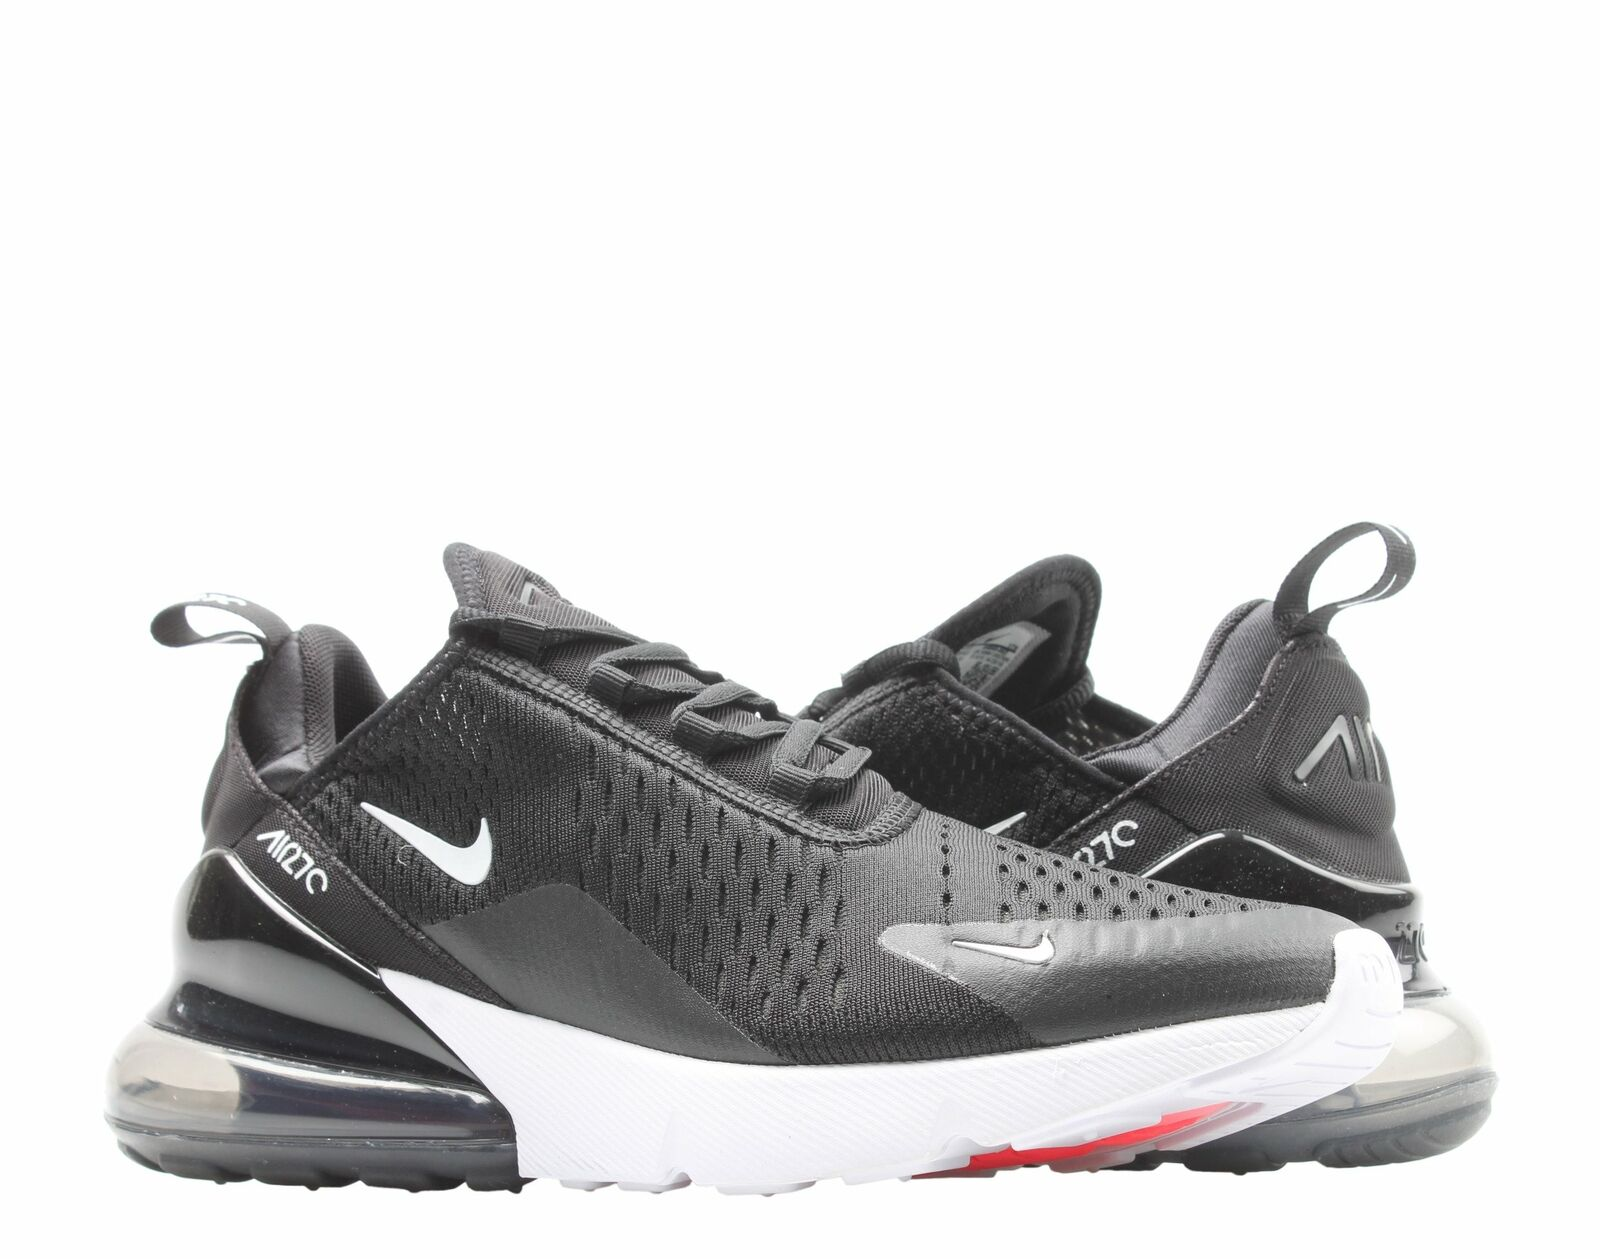 uk availability b8e4b 47927 Nike Air Max 270 Mens Ah8050-002 Black White Anthracite Running Shoes Size  12